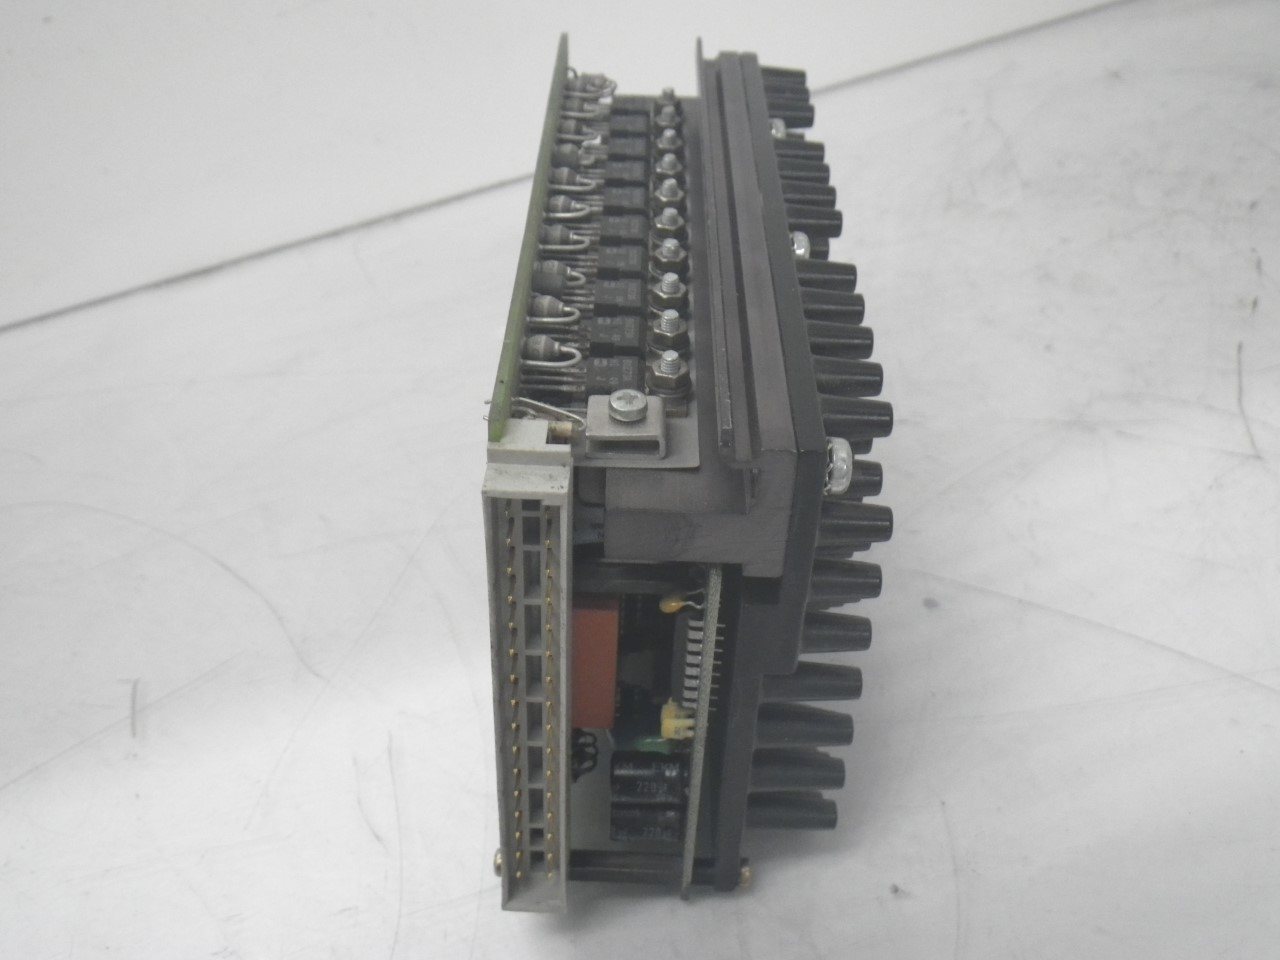 IMGP8387D 550 RS 19 Berger Lahr Stepper Drive + Siemens B1500-D325 Board(Used Tested) (7)